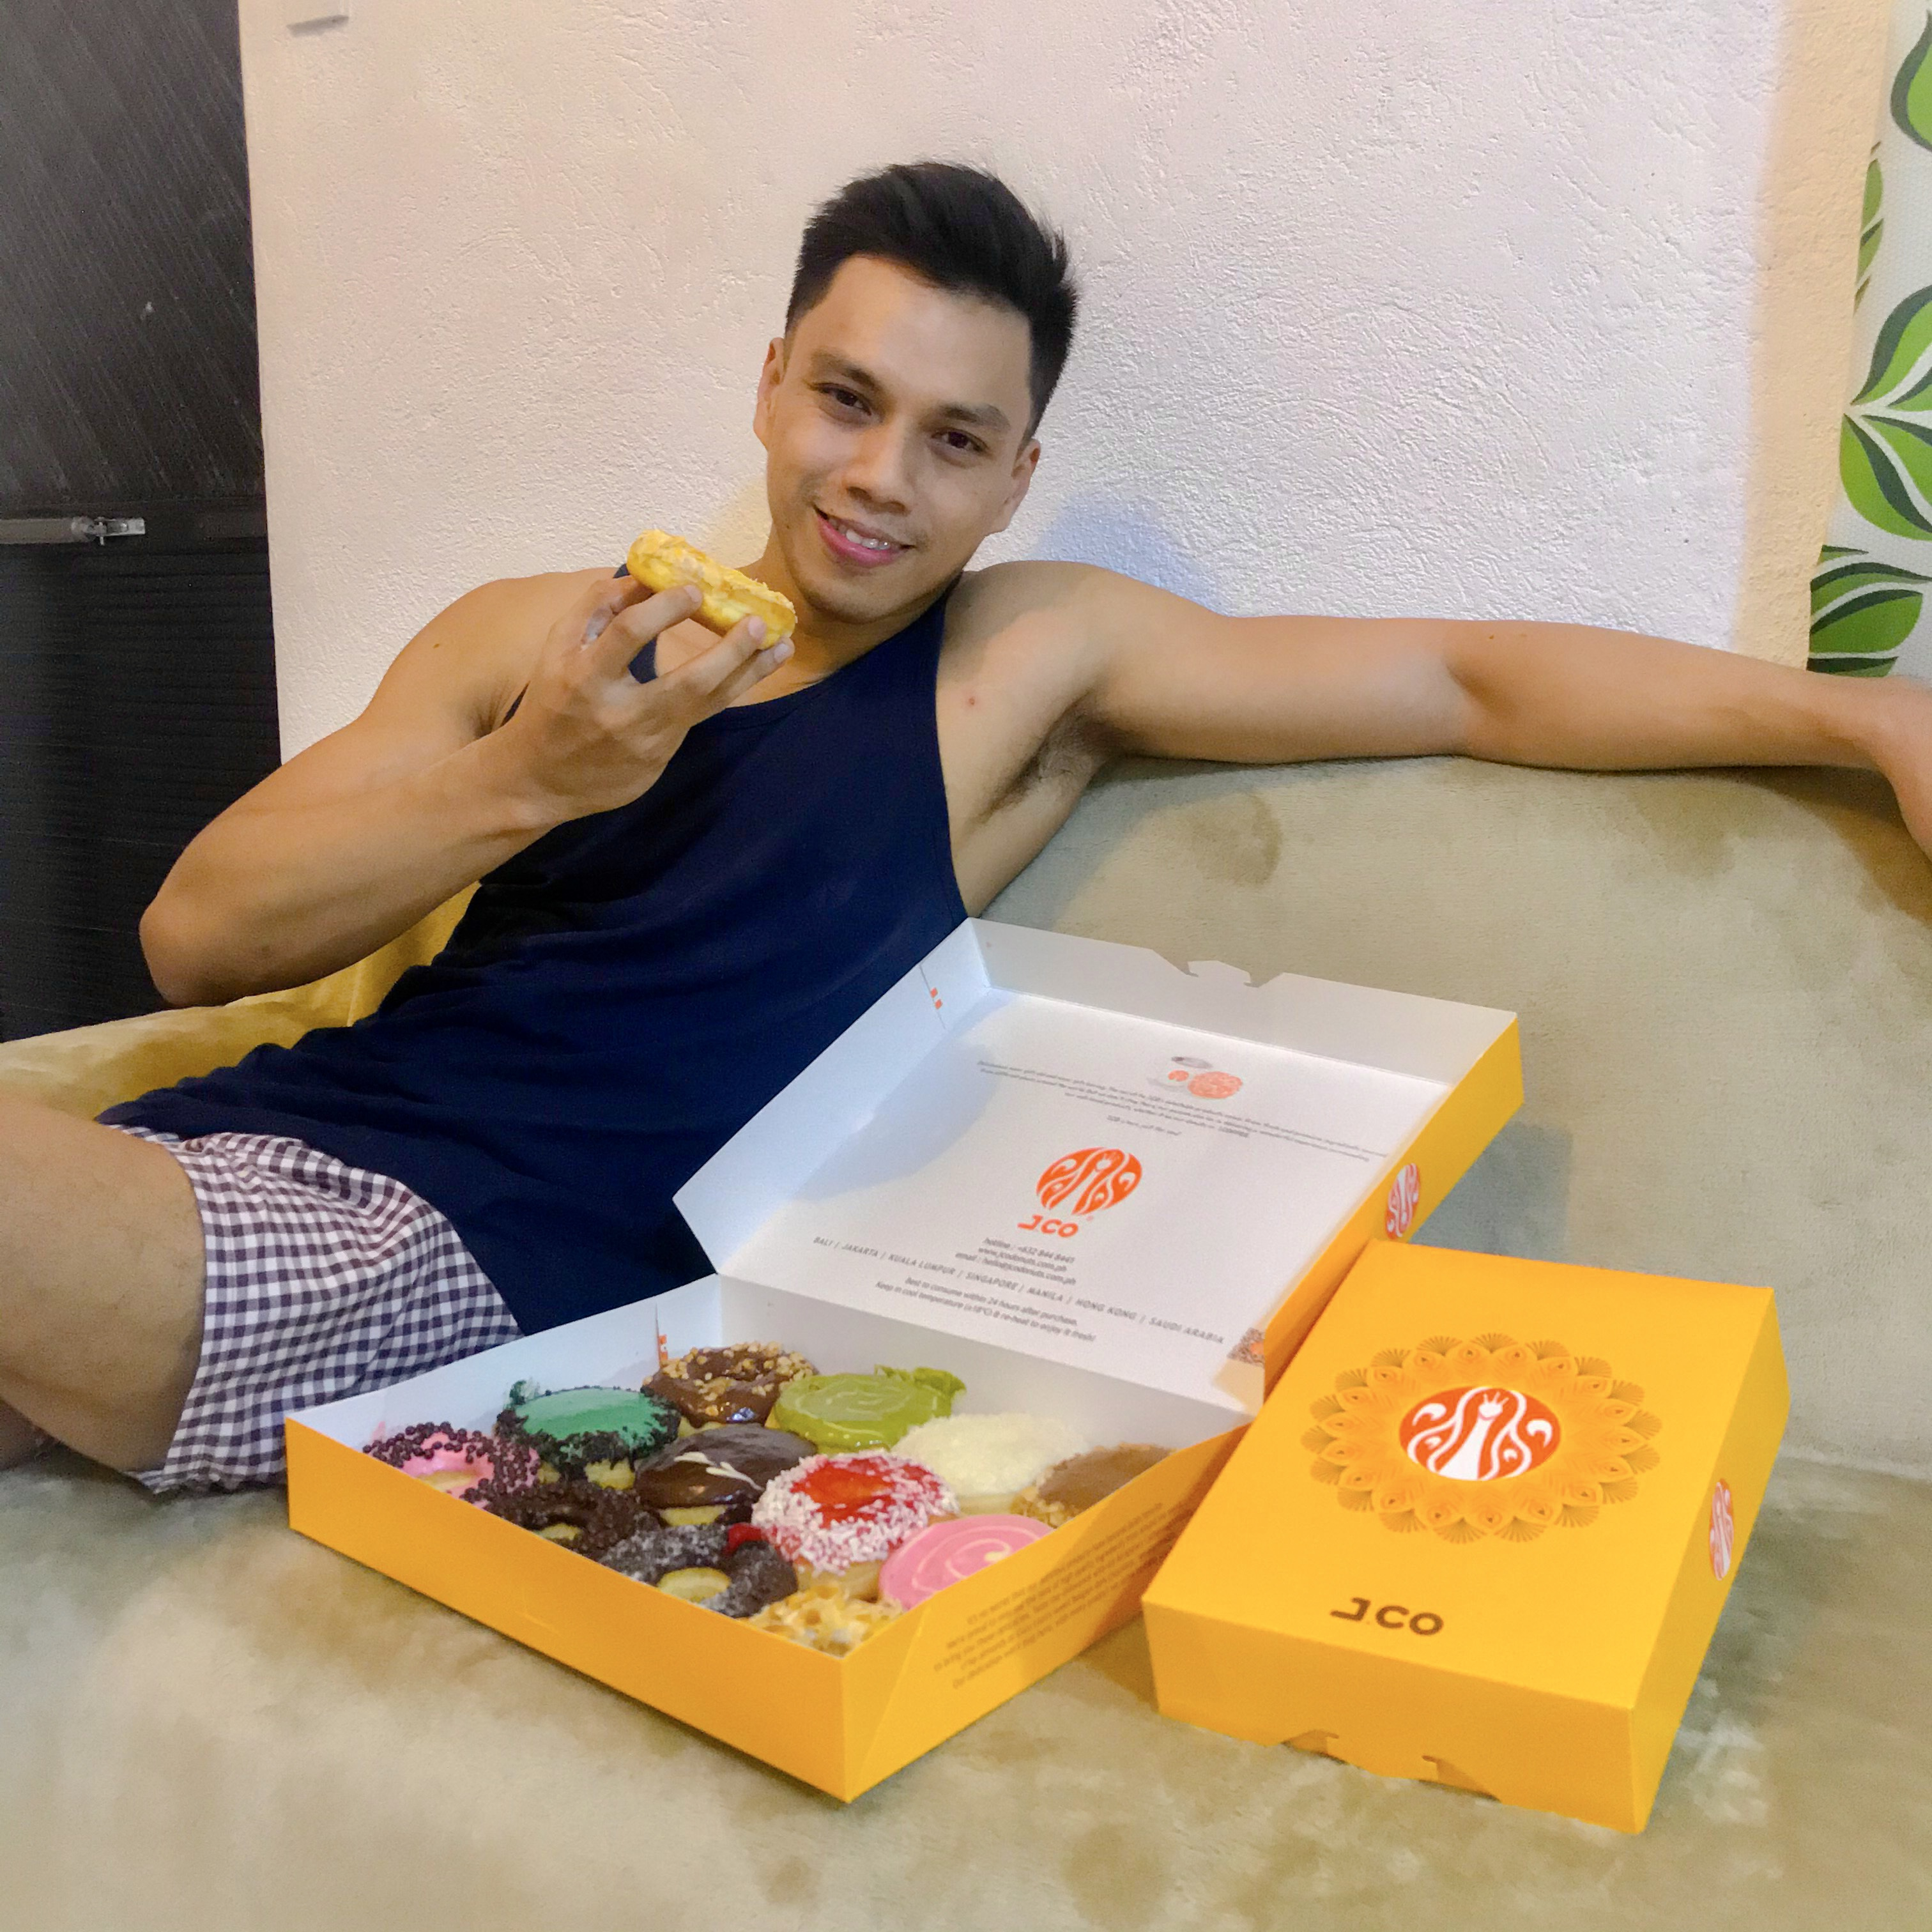 Indulge with Half Dozen of J. Co Donuts for only 1 Peso via GrabFood